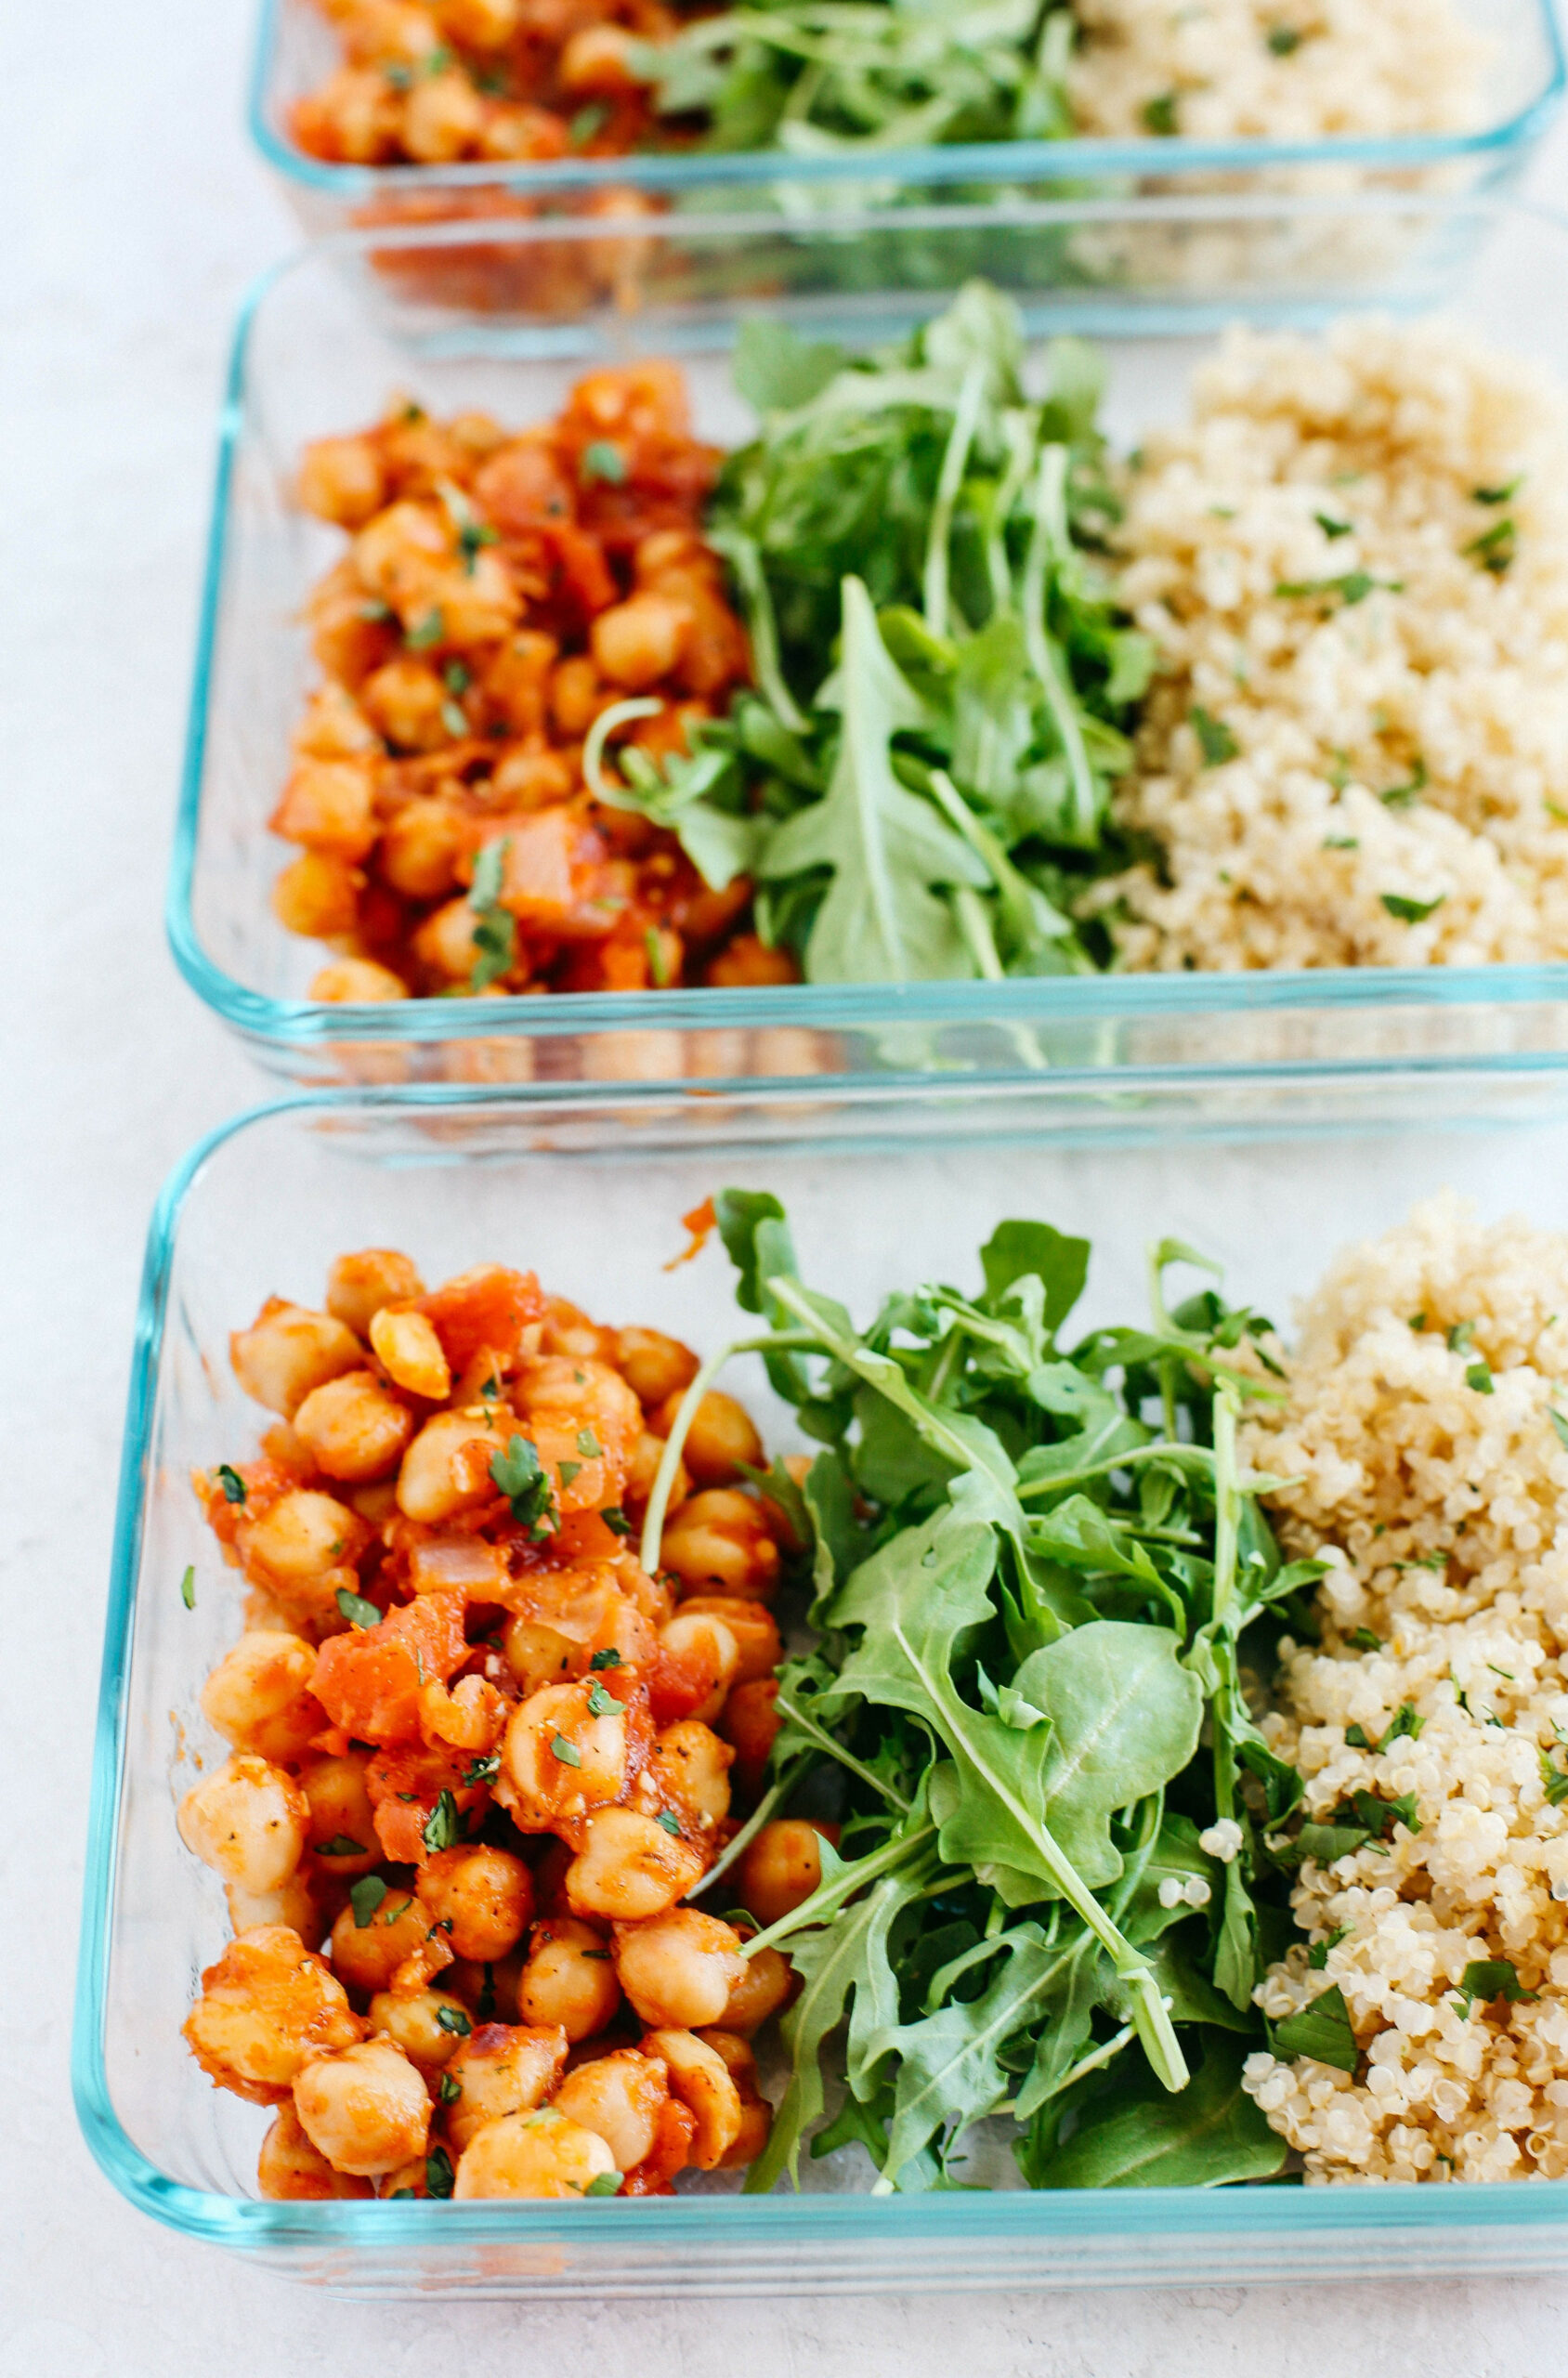 Spicy Chickpea And Quinoa Bowls - Chickpea Recipes Dinner